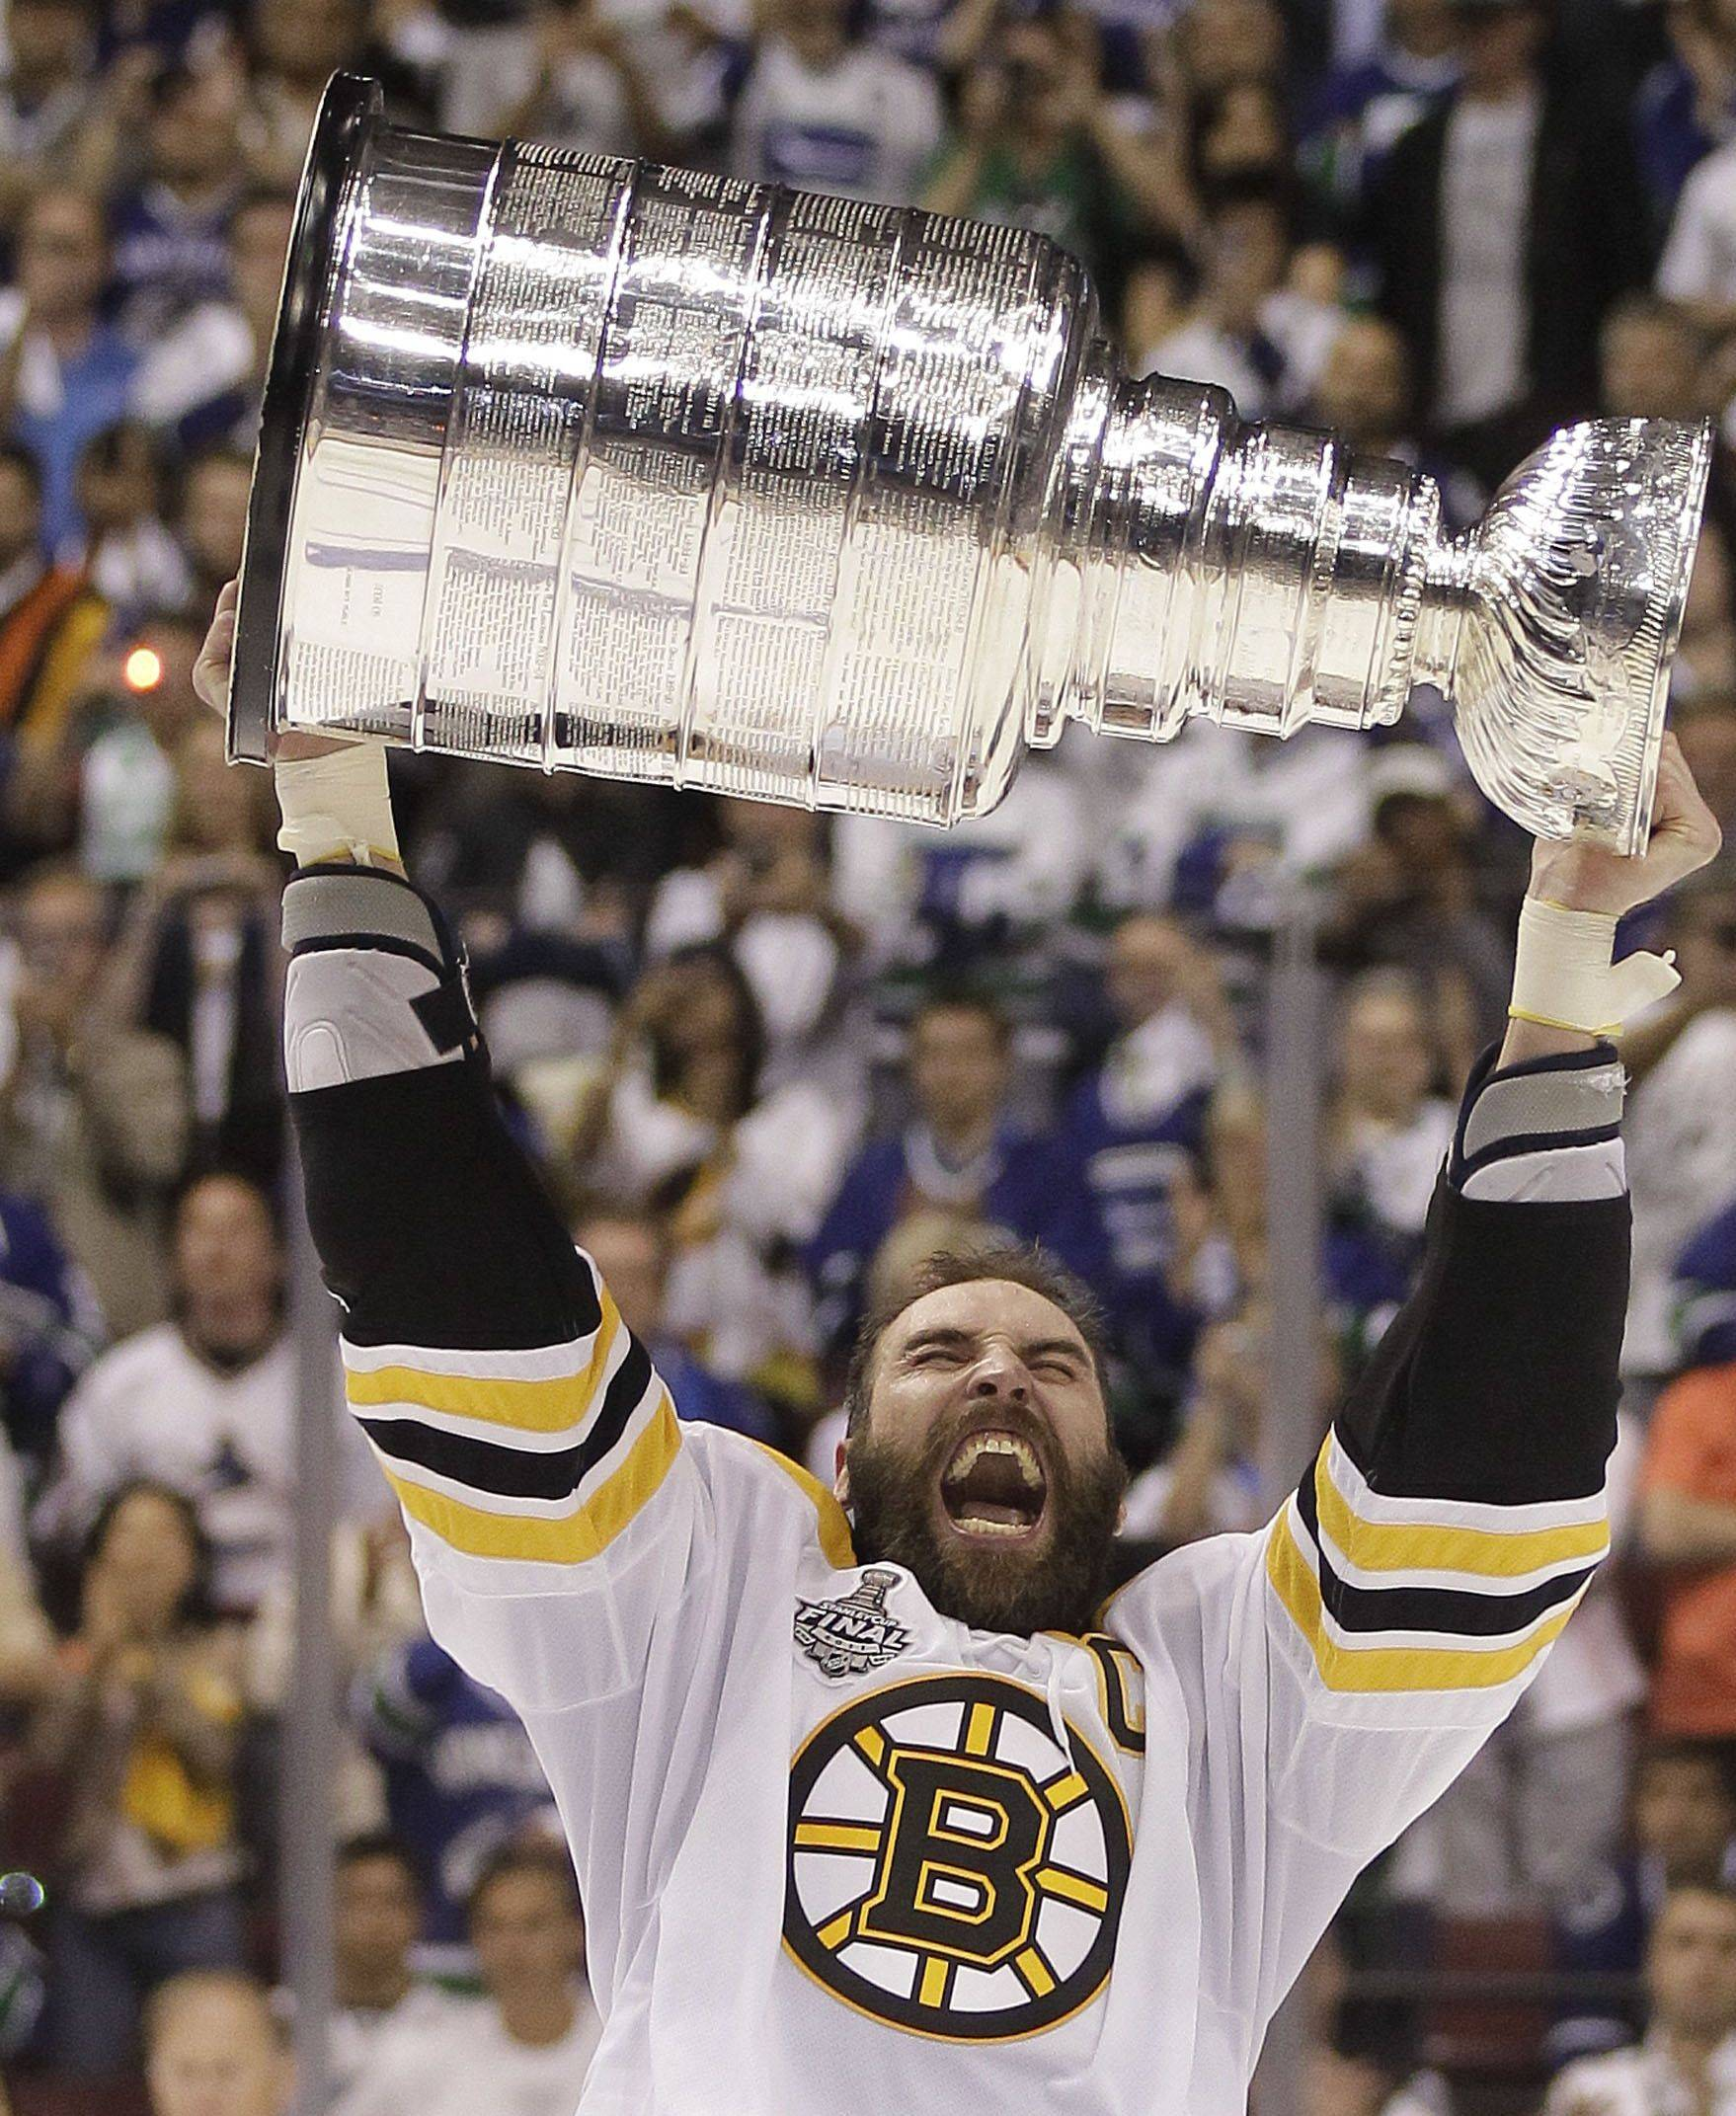 It's tough to repeat after winning the Stanley Cup, and our hockey expert, Tim Sassone, doesn't believe the Boston Bruins will make it back to the title game.